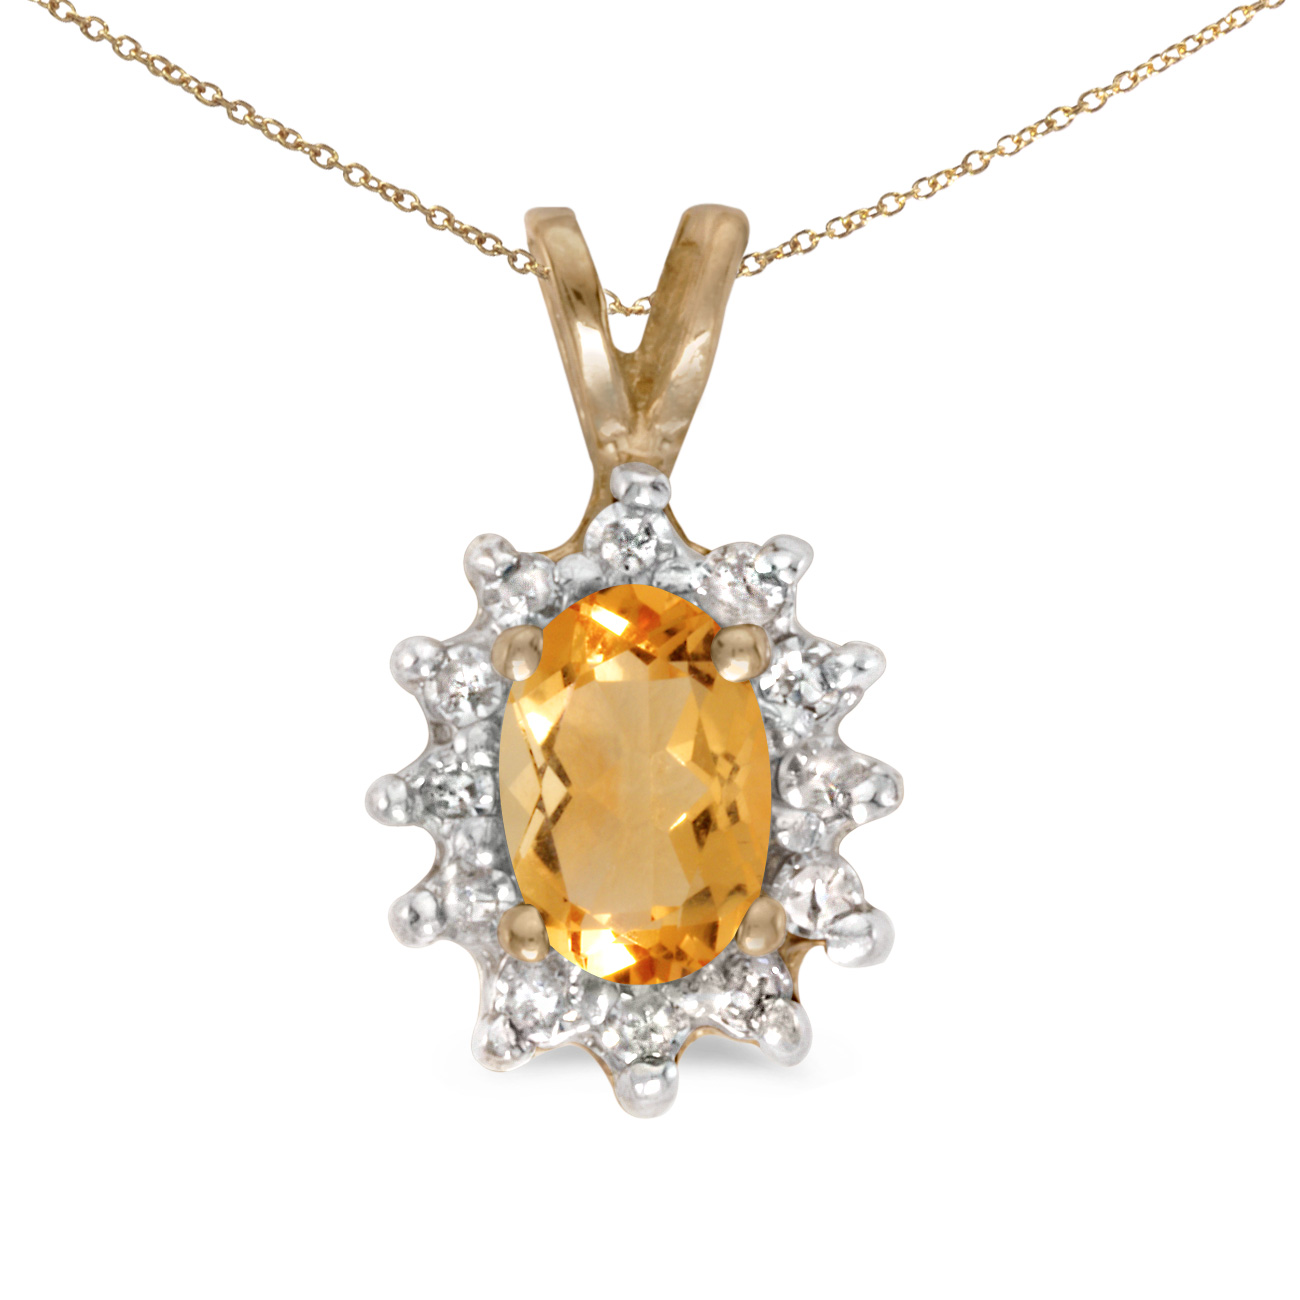 This 14k yellow gold oval citrine and diamond pendant features a 6x4 mm genuine natural citrine w...